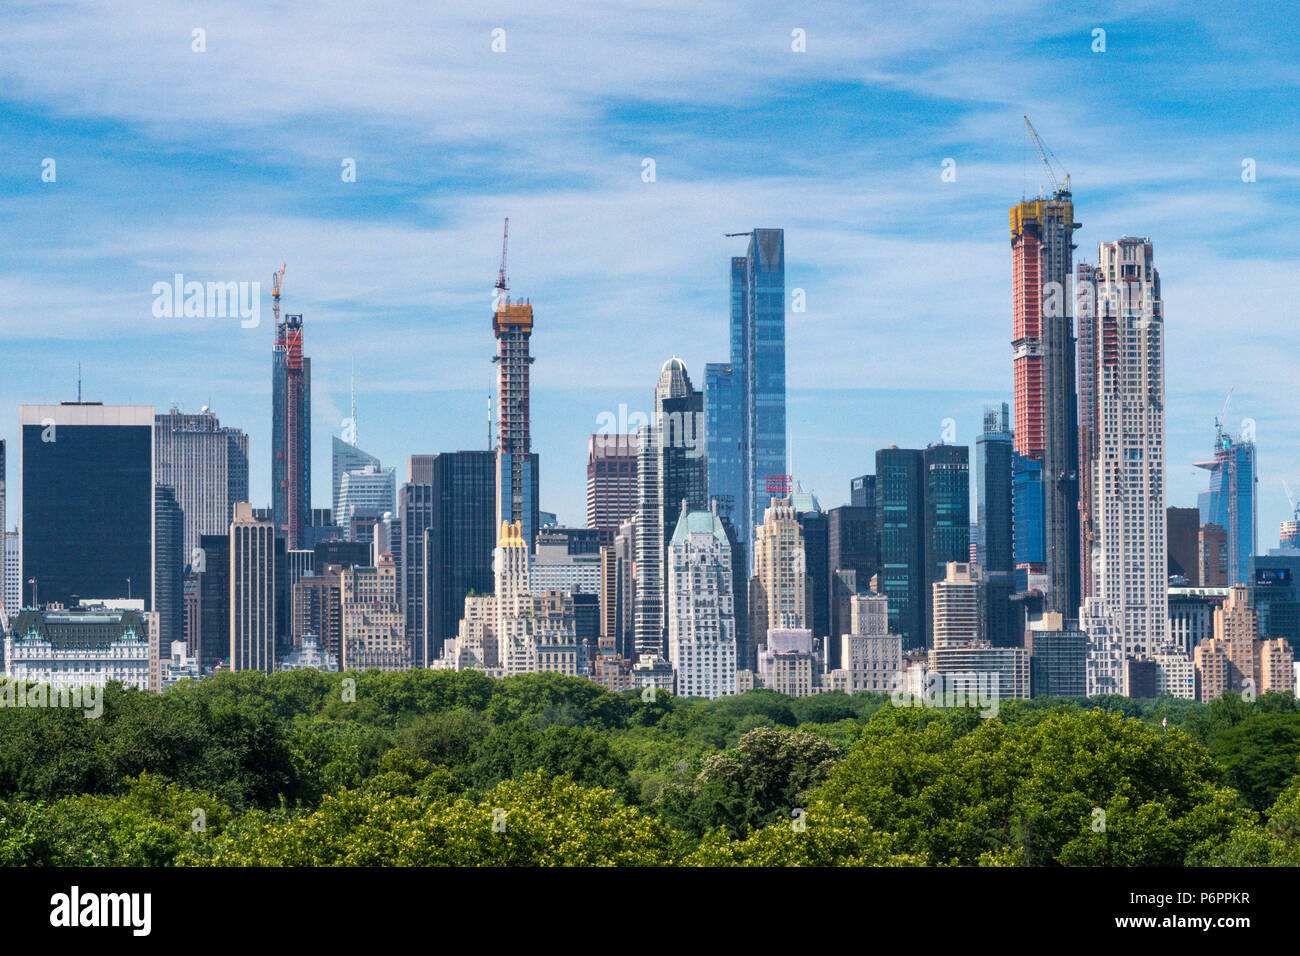 New York City Skyline with Central Park in the foreground, NYC, USA - Stock Image